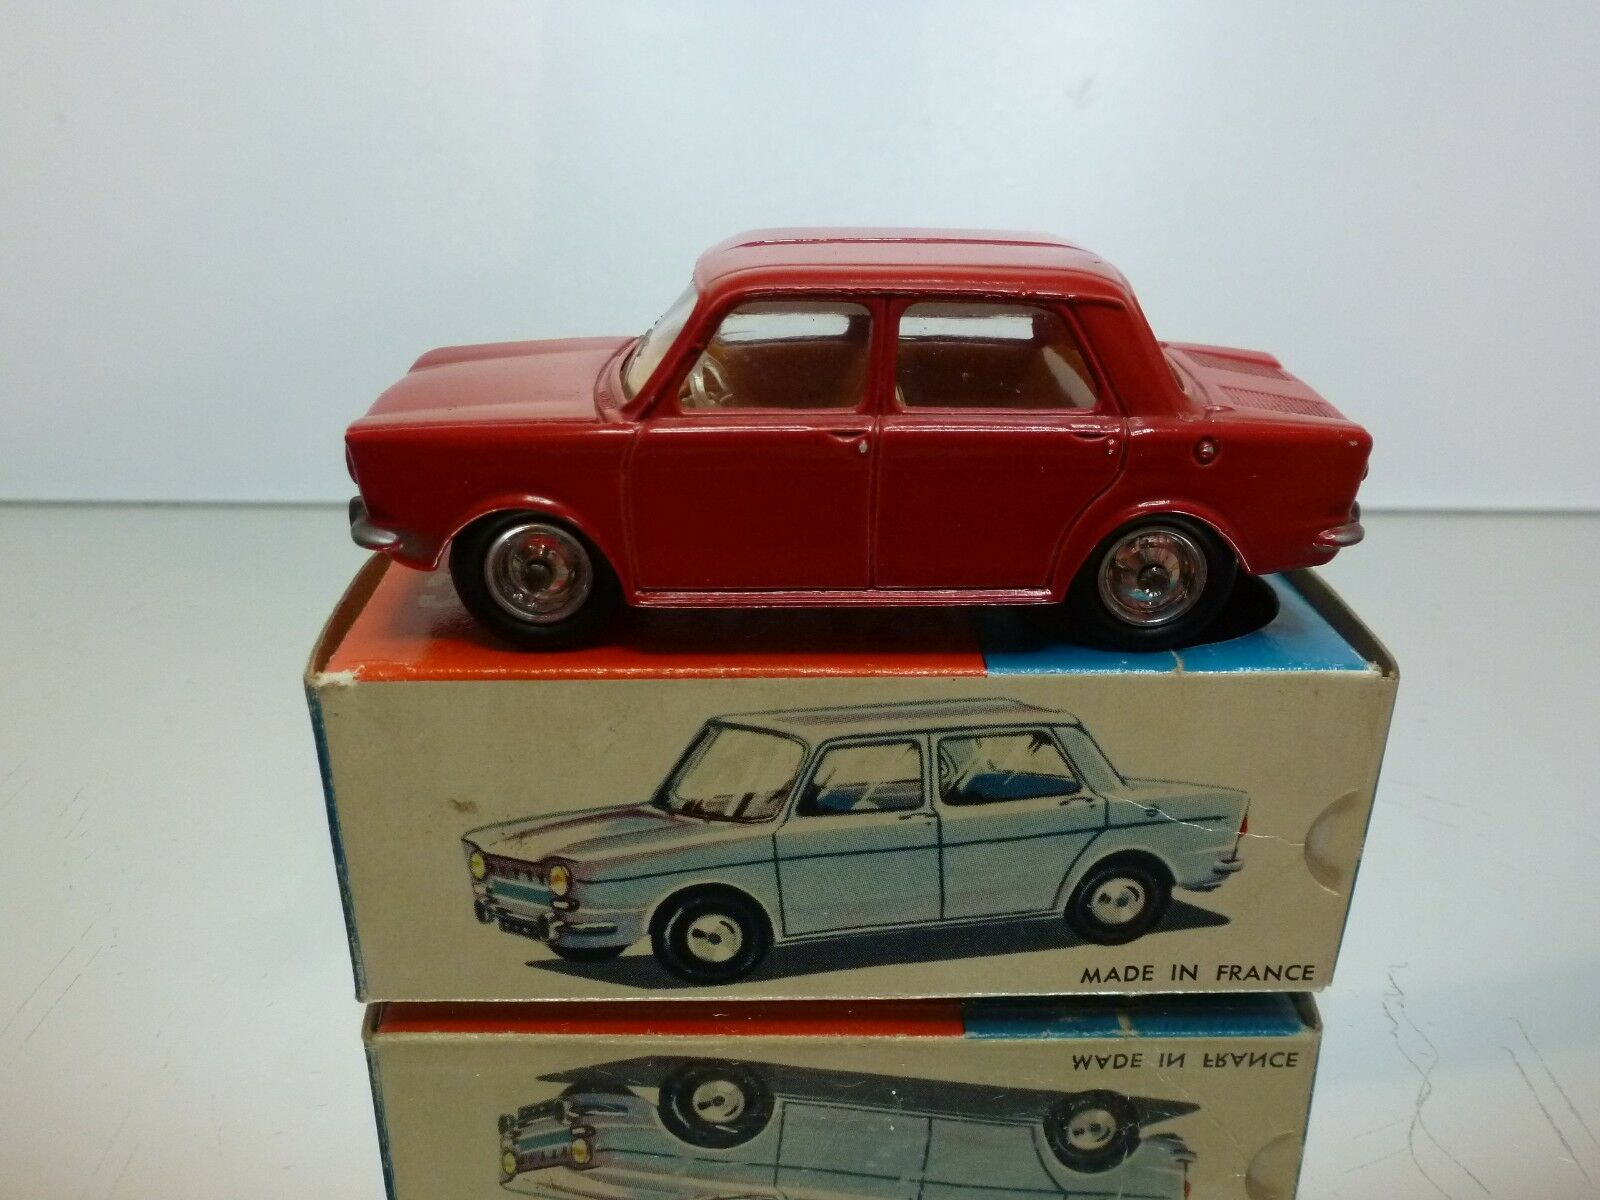 CIJ EUROPARC 3 7 SIMCA 1000 - rosso 1 43 - EXCELLENT IN BOX